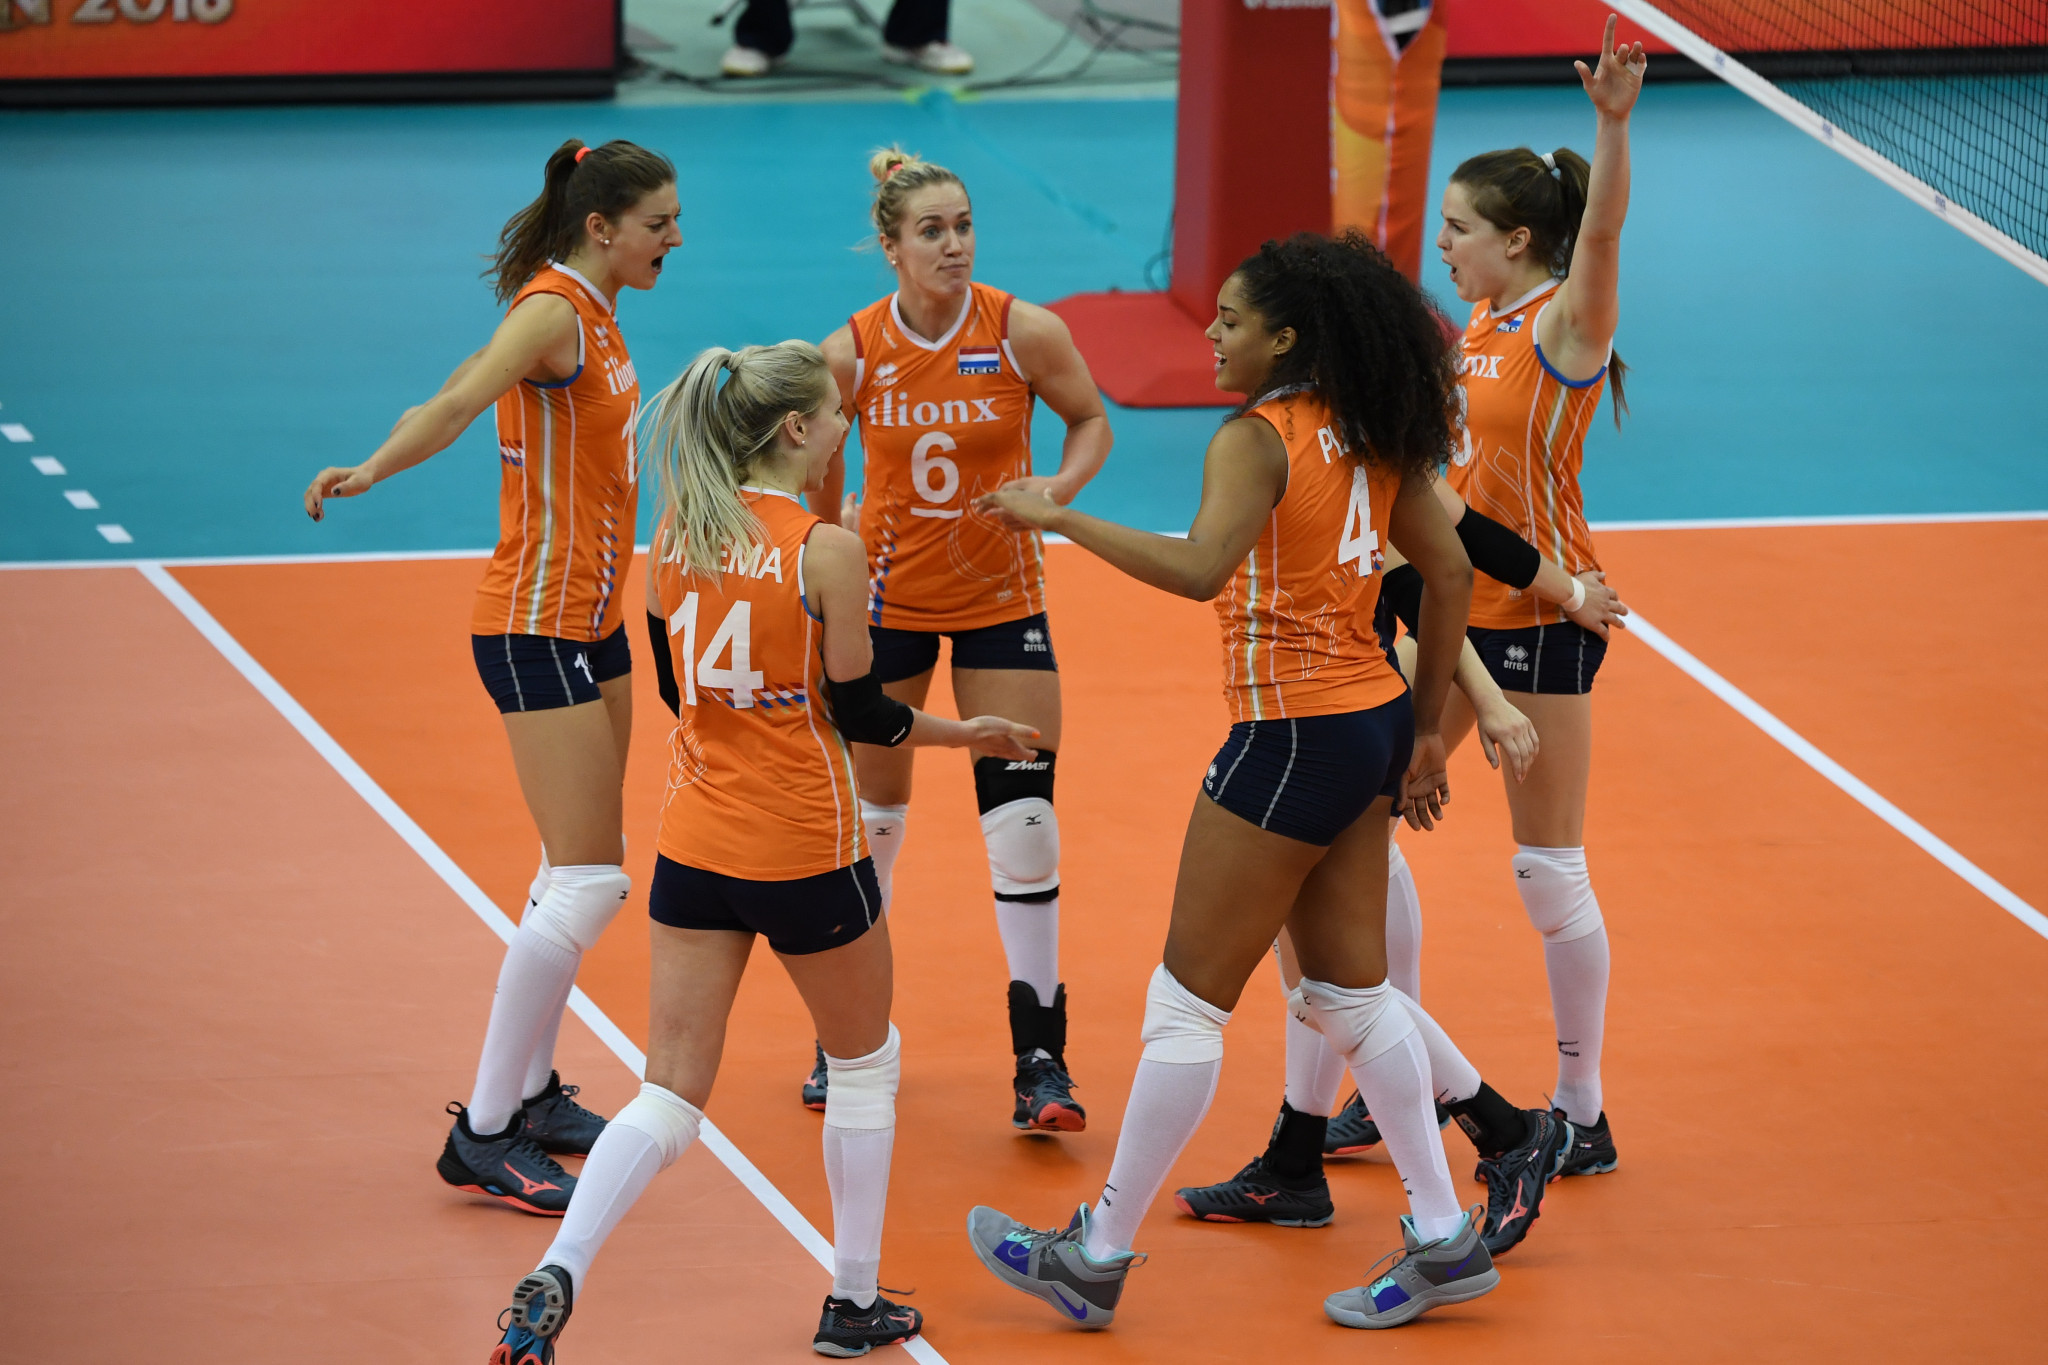 Co-hosts The Netherlands will take part in the third place playoff after being defeated by Serbia in the last four of the FIVB Women's Under-20 World Championship ©Getty Images